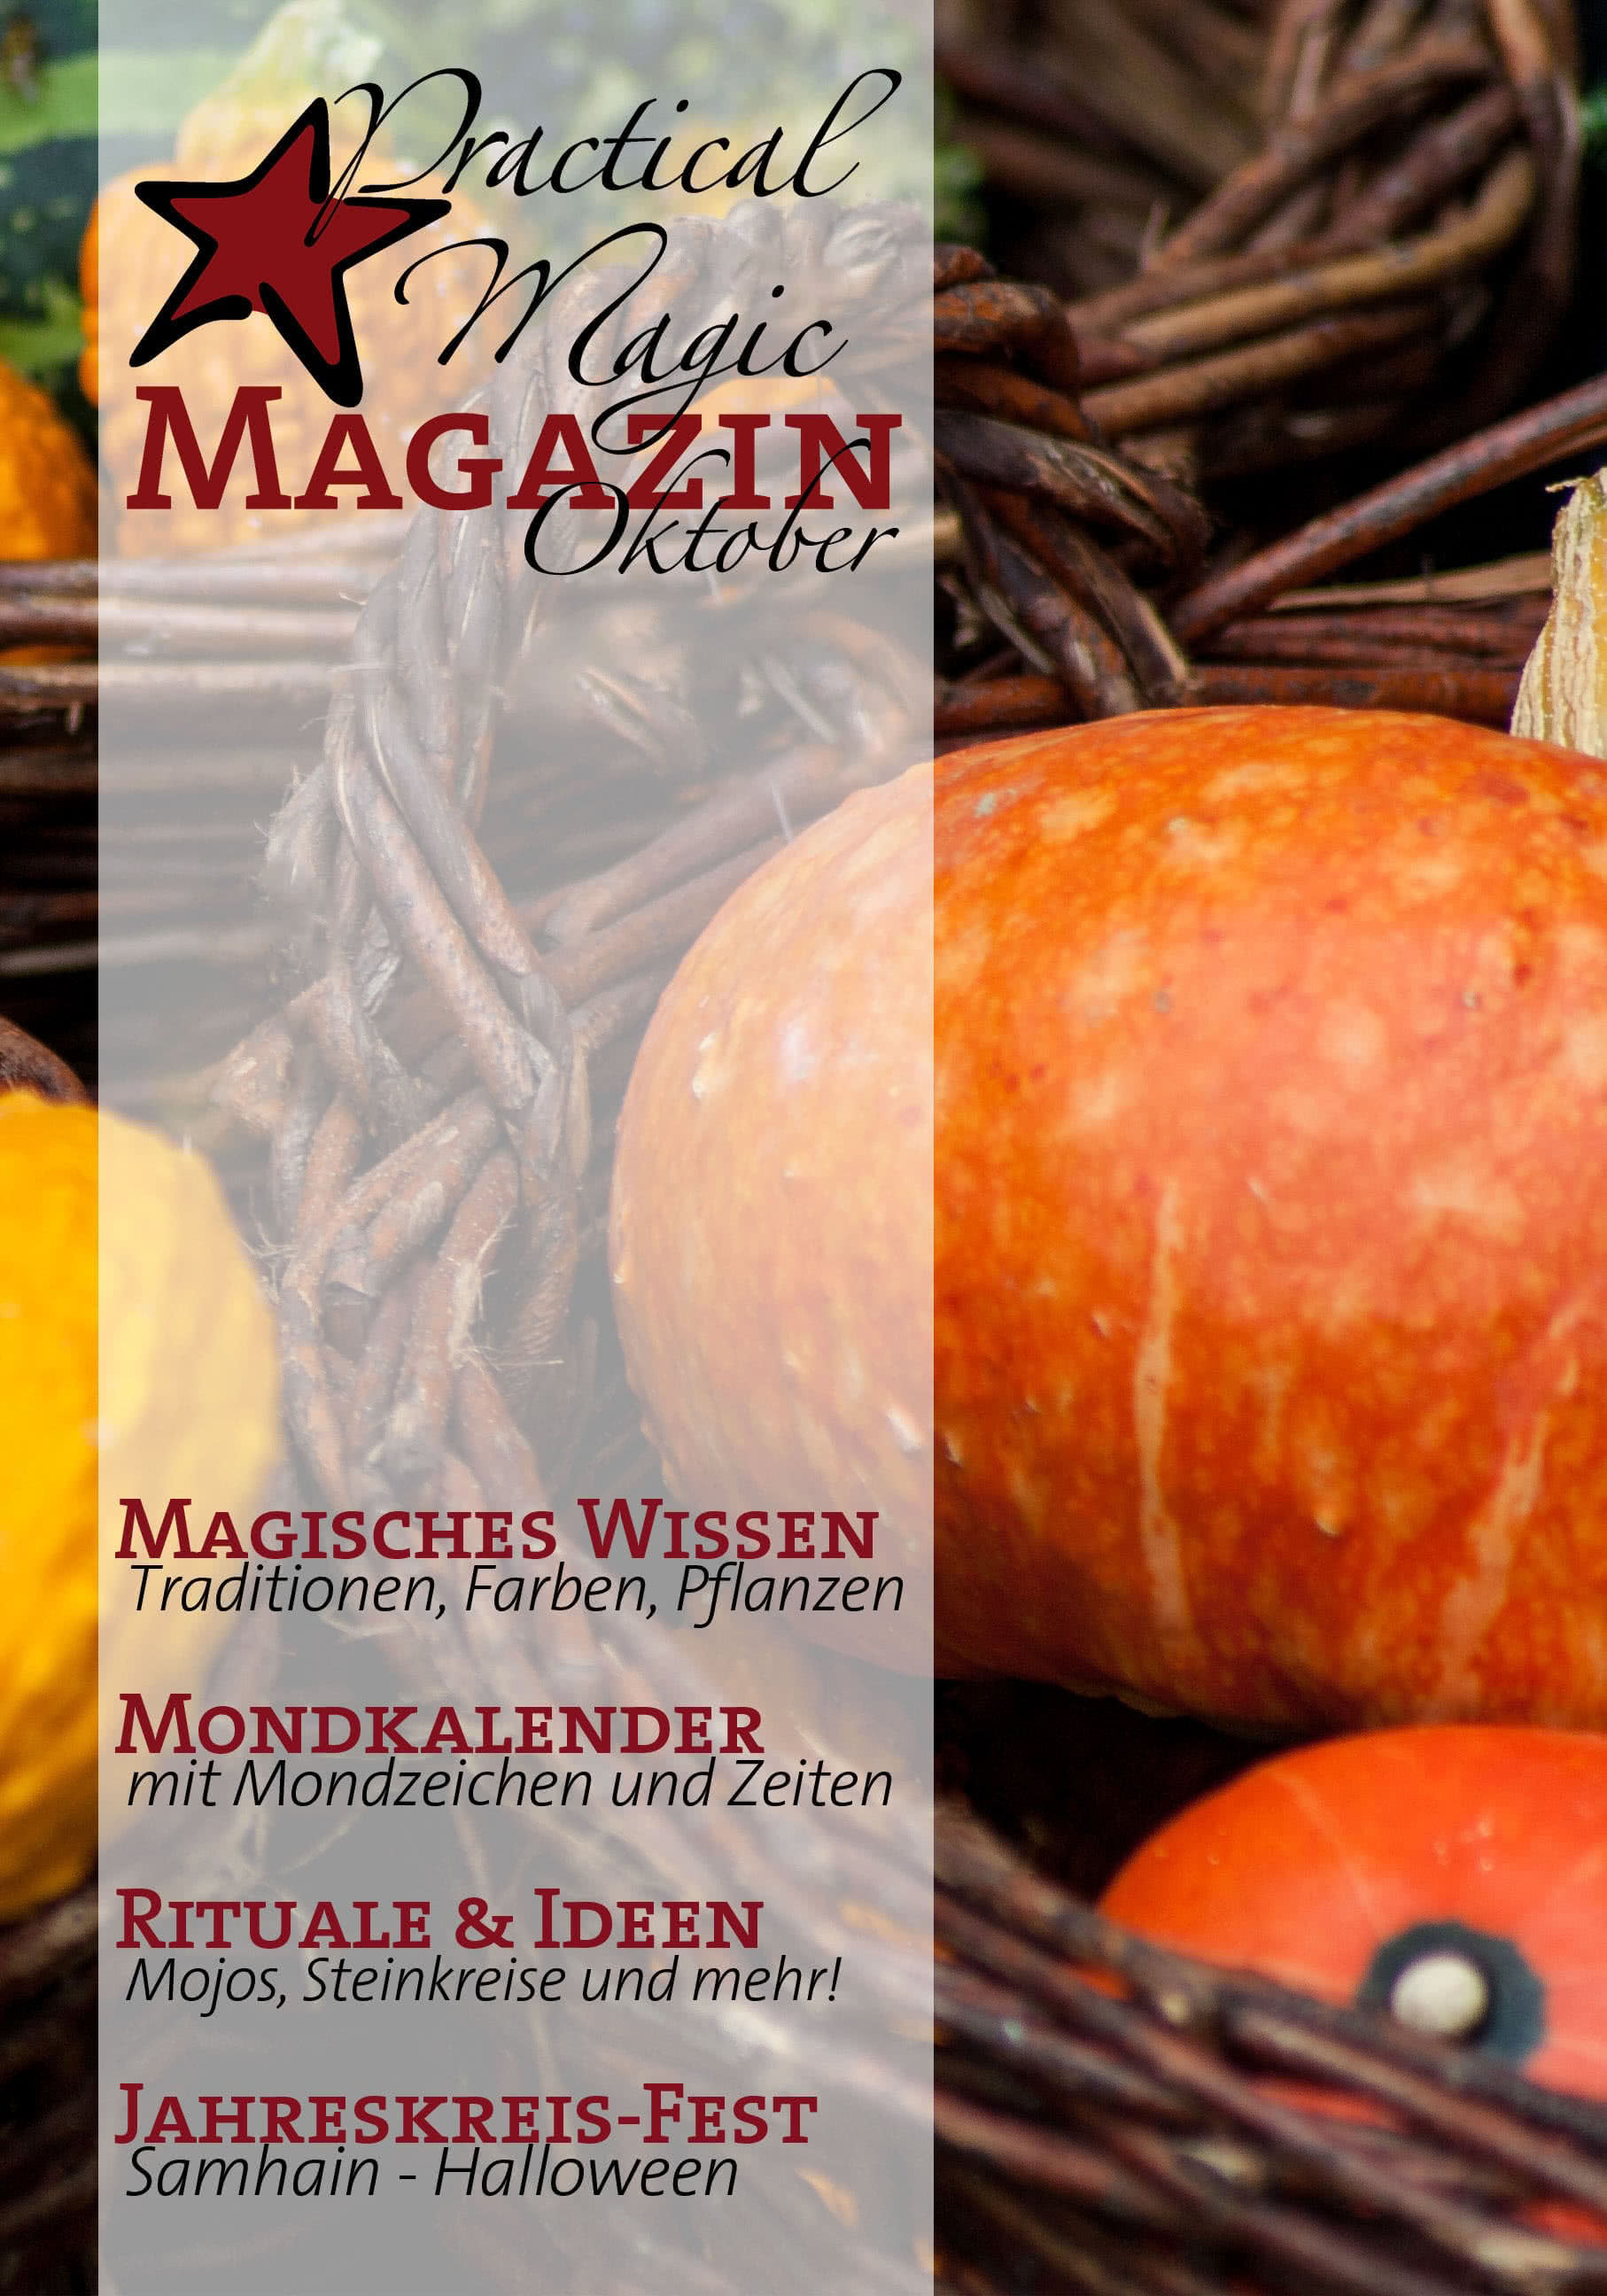 Practical Magic Magazin Oktober-Ausgabe